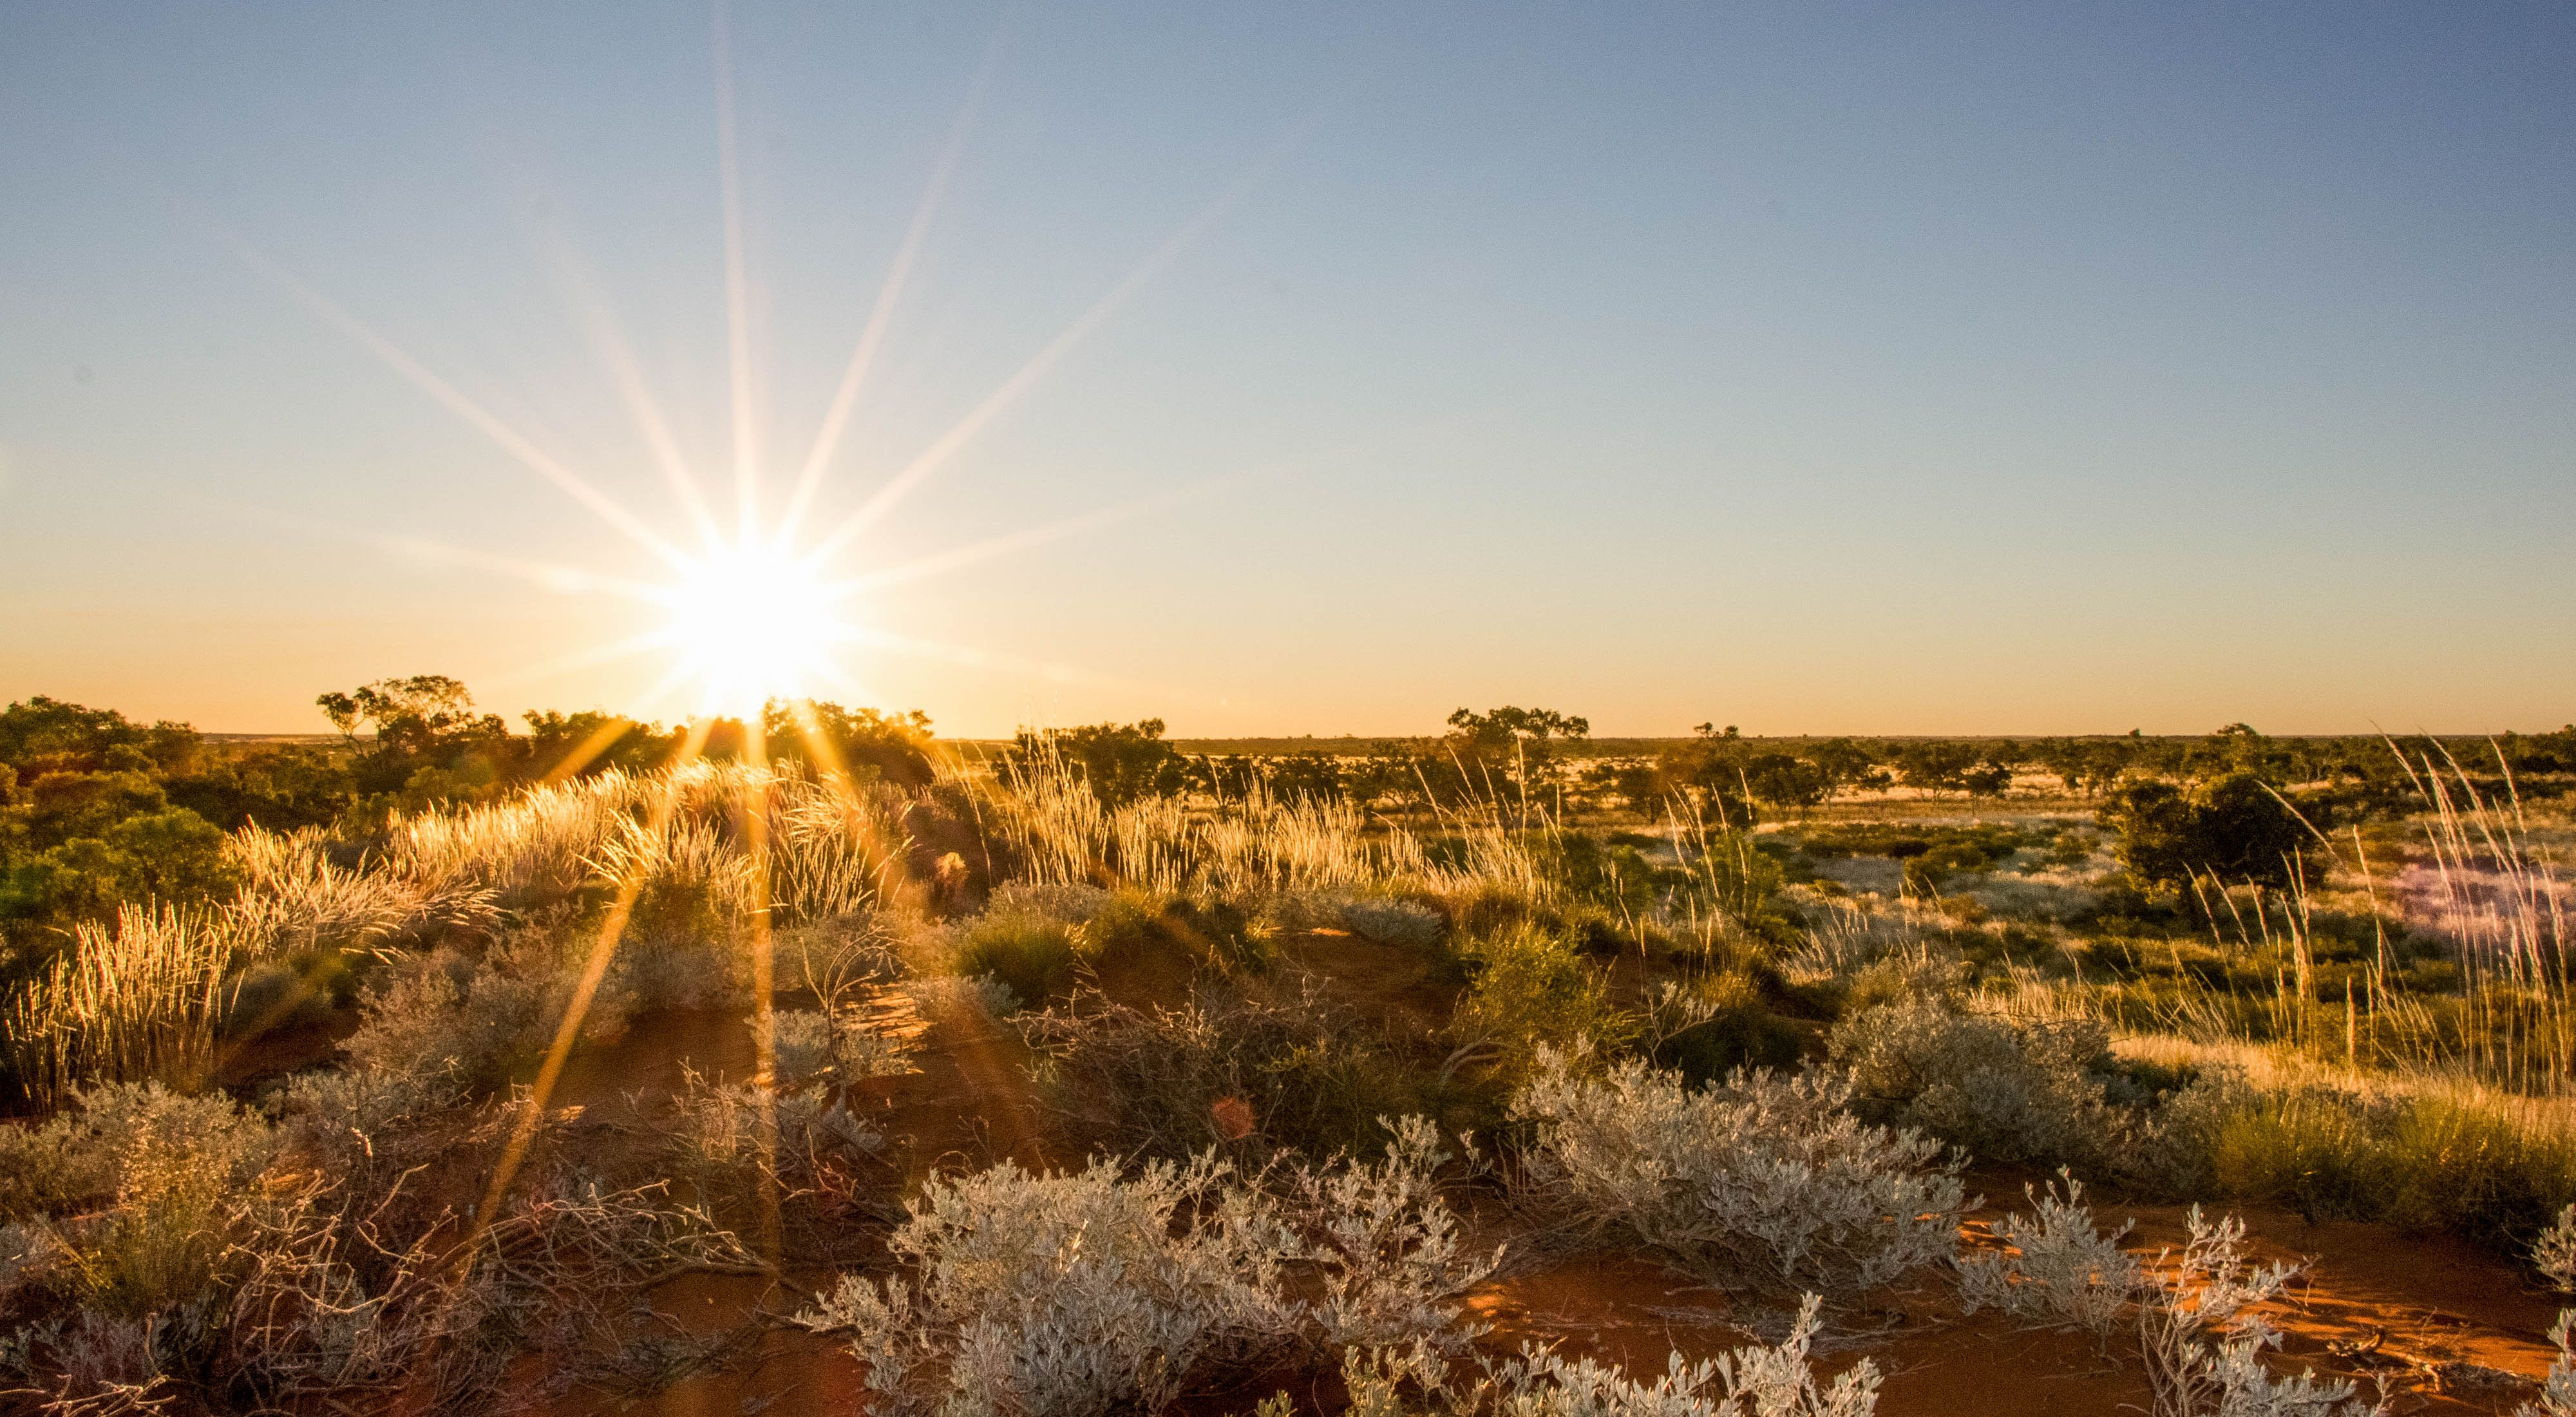 over the sand dunes on Martu country, Western Australia.